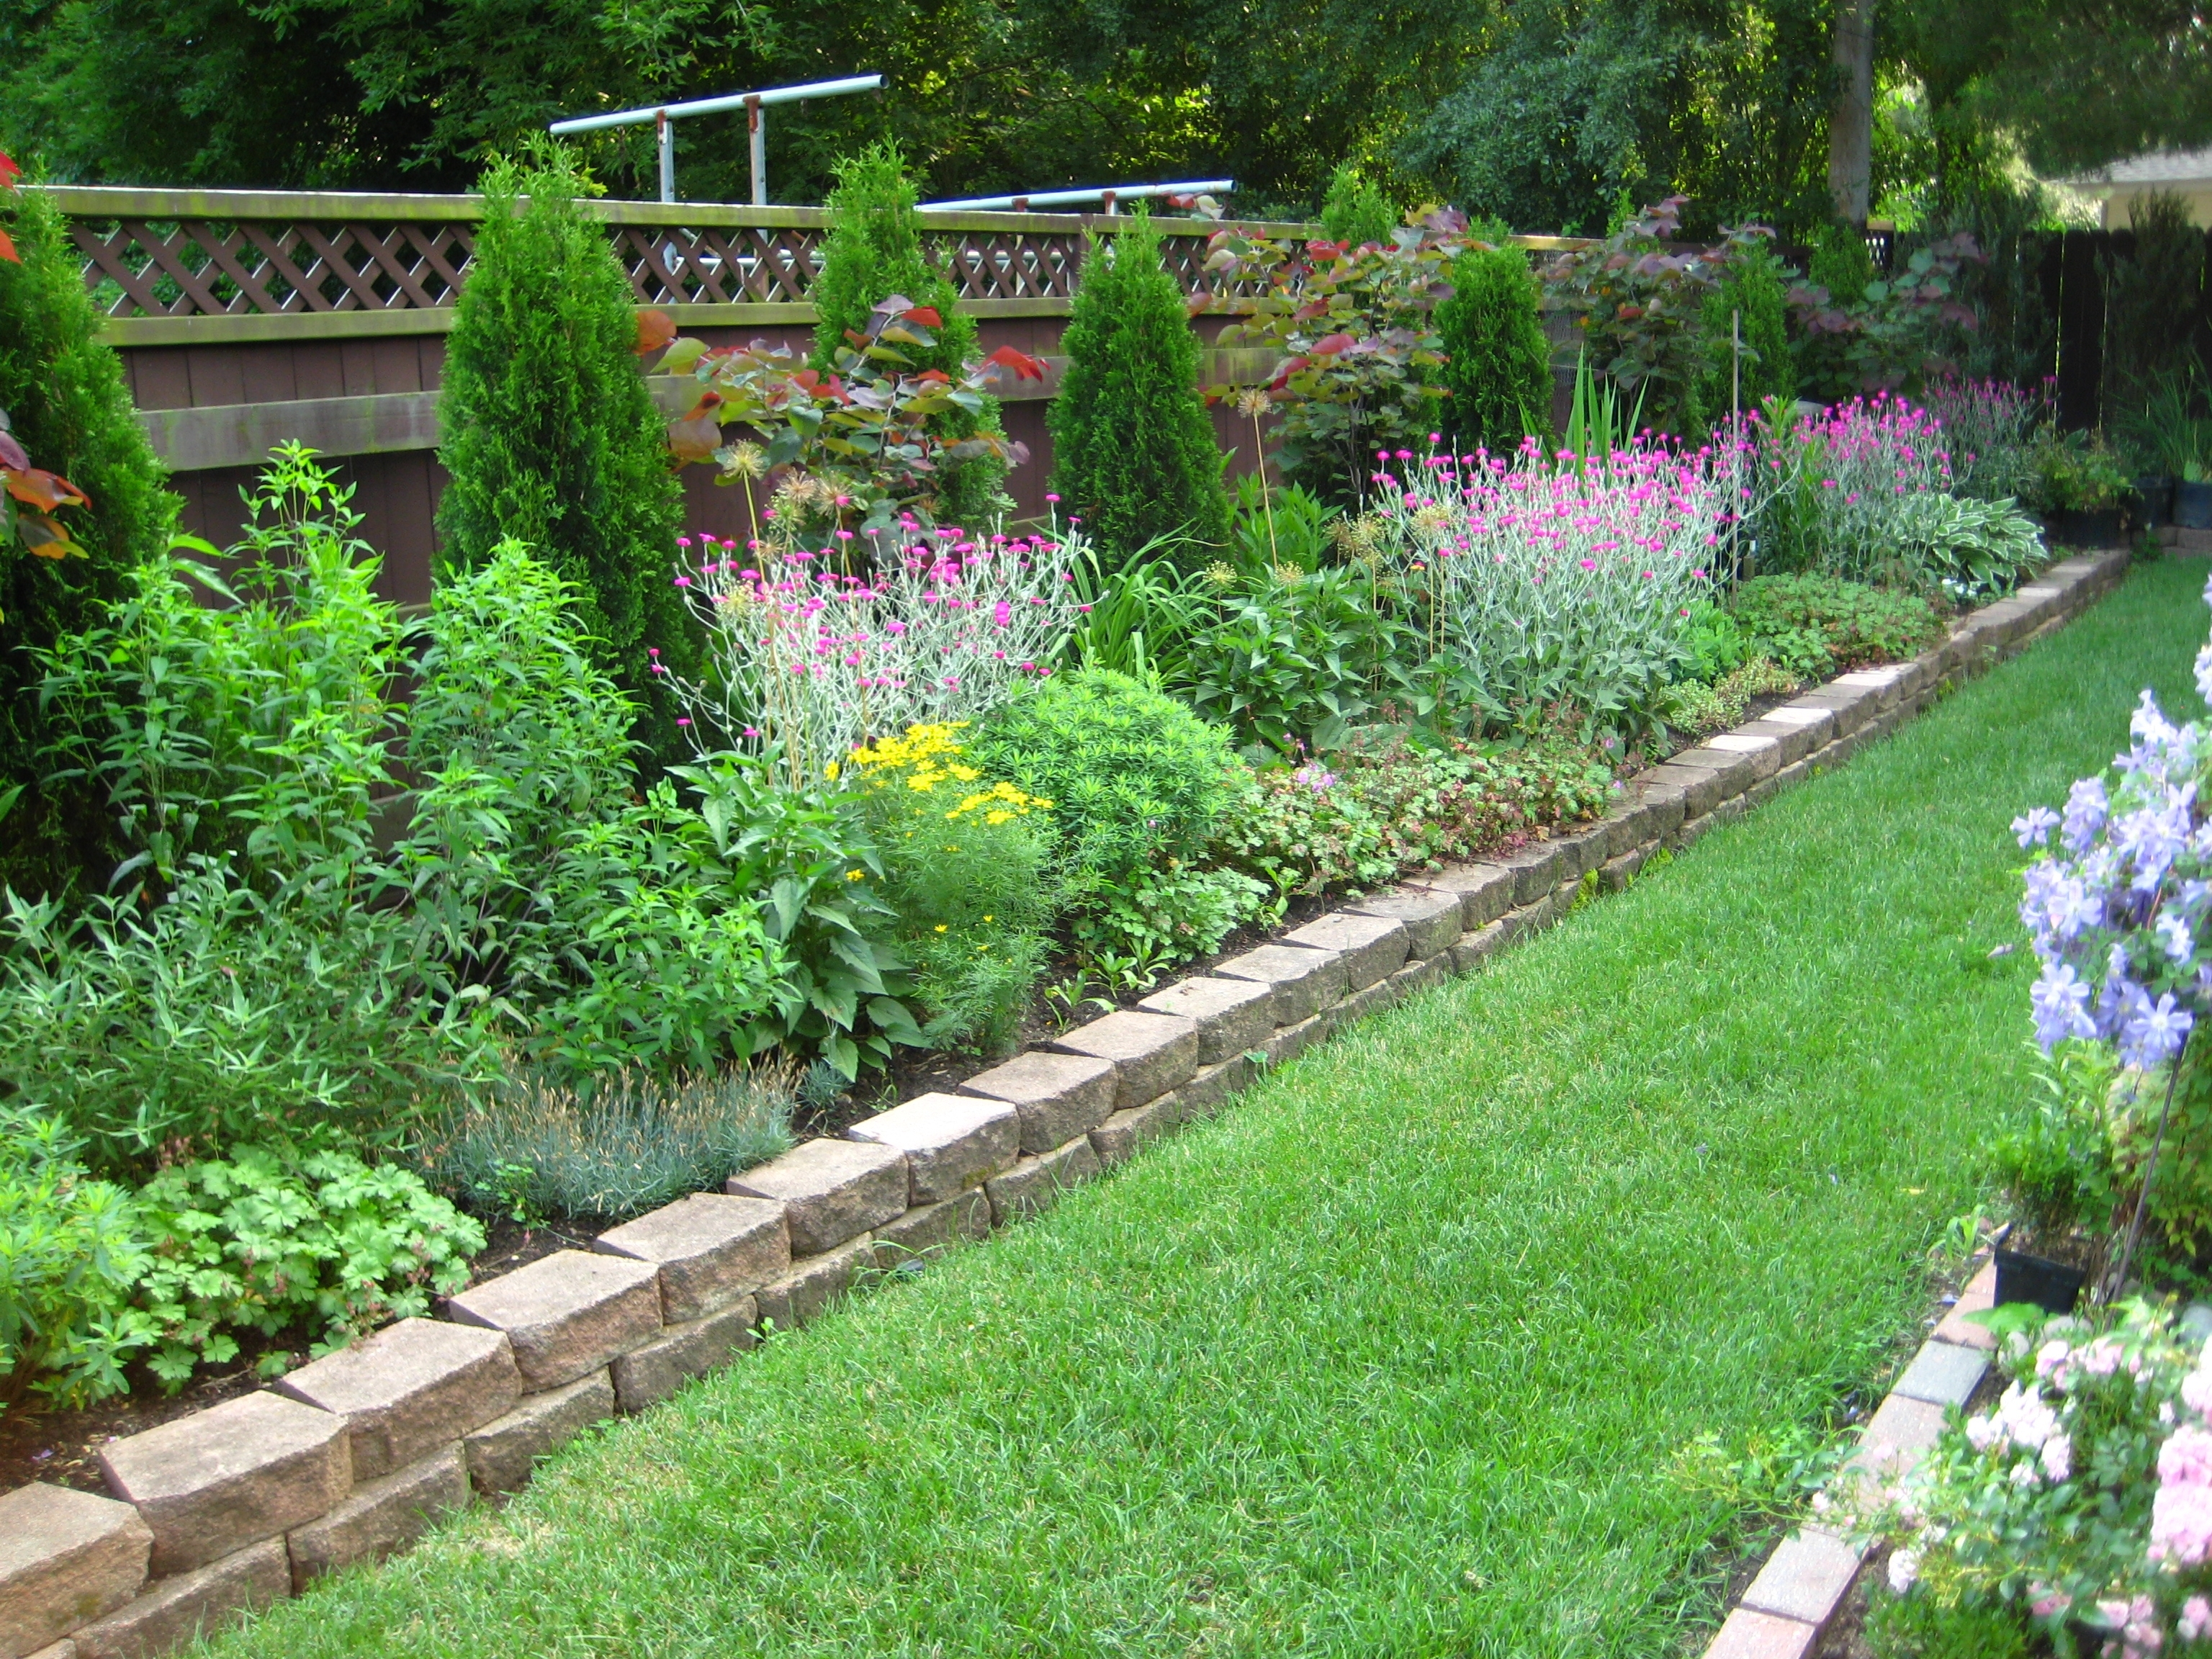 Enhance your garden with appealing garden border ideas